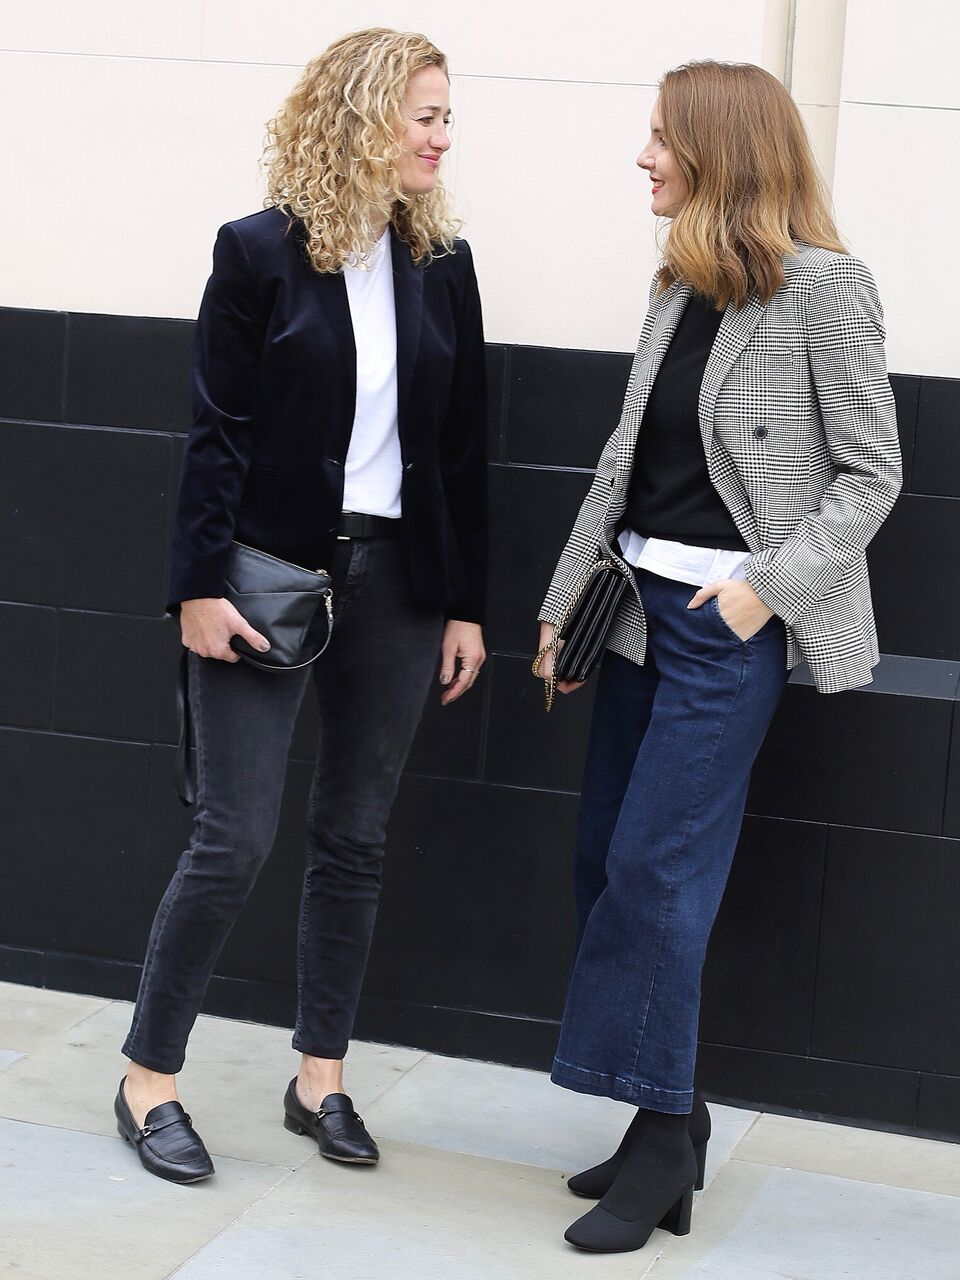 THE GROWN UP EDIT - Blazers Street Style